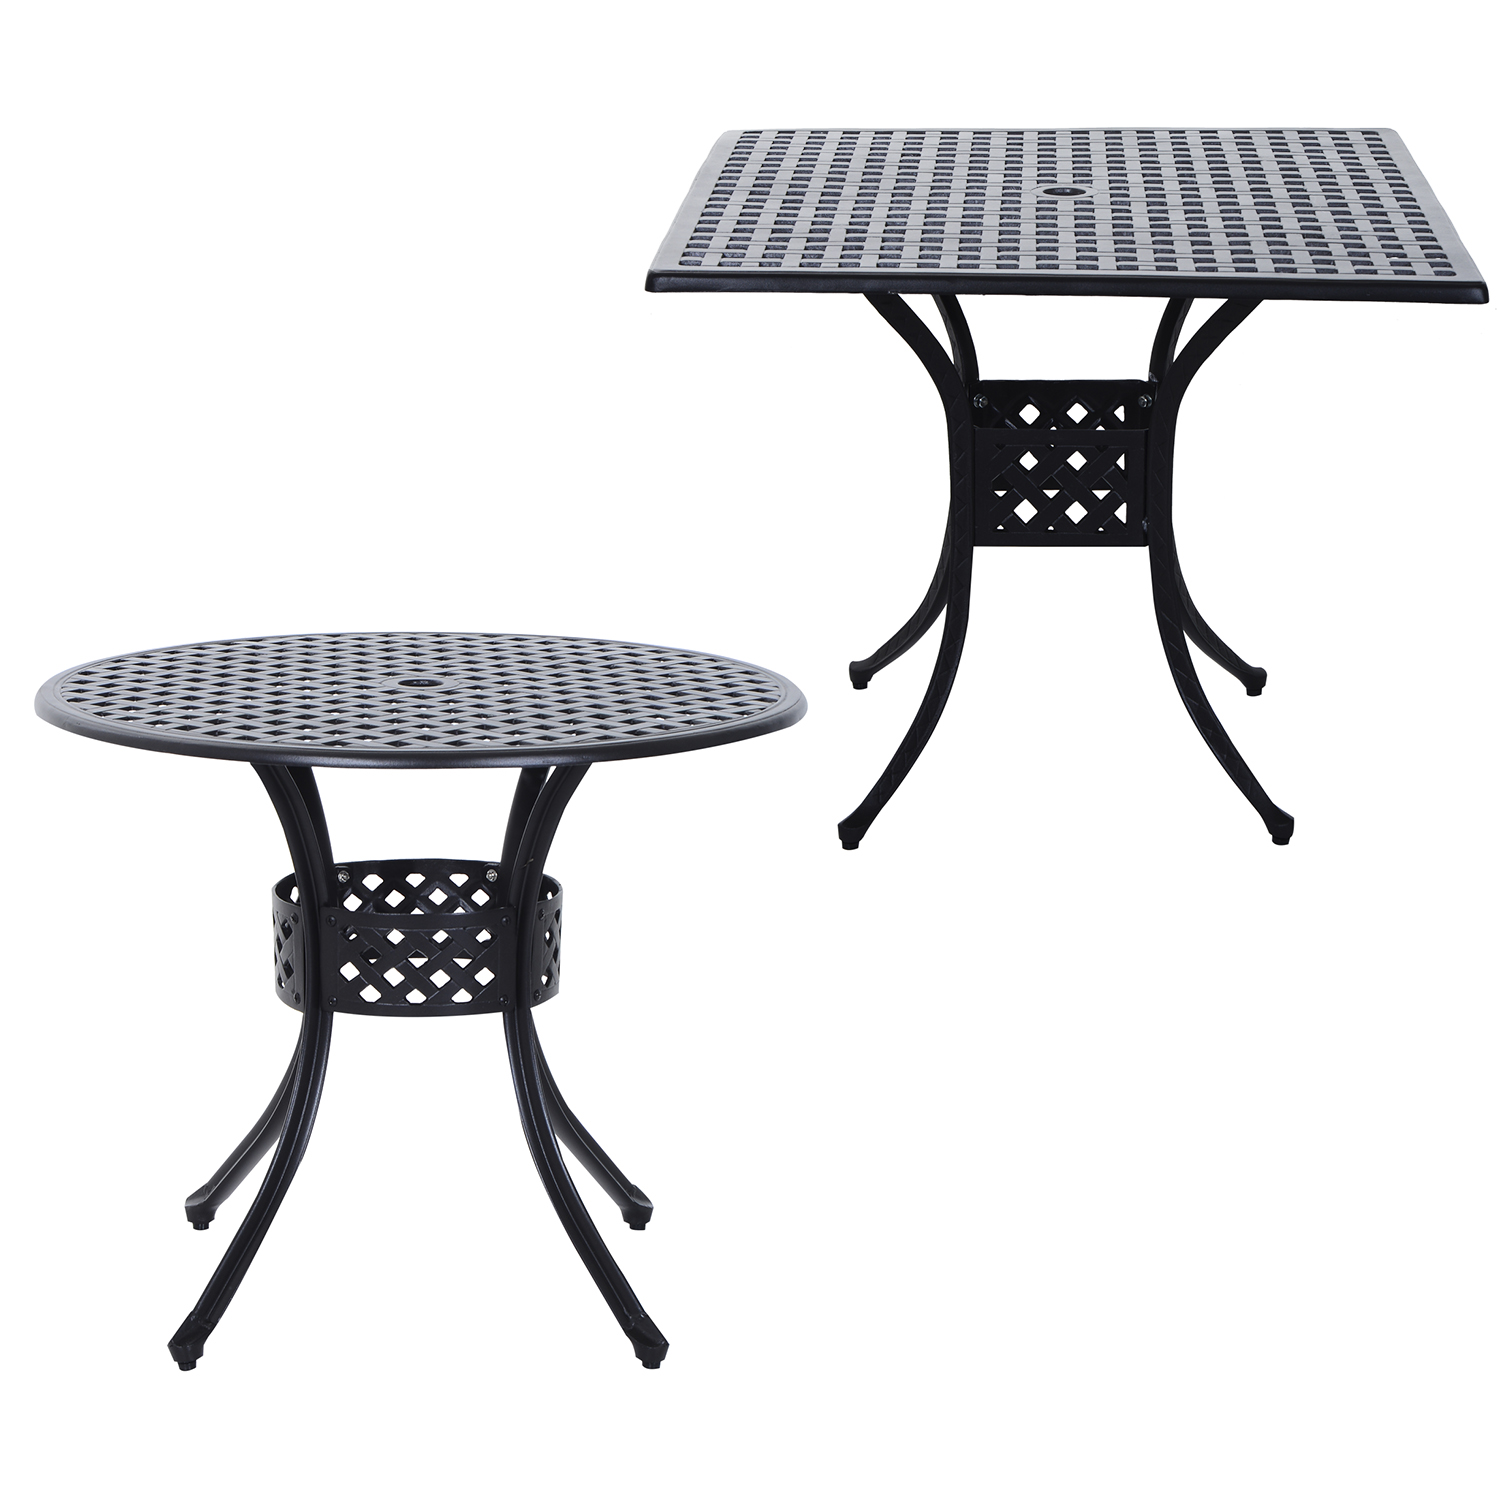 Amazing Details About Square Round Cast Aluminum Outdoor Dining Table Garden Patio Furniture Black Theyellowbook Wood Chair Design Ideas Theyellowbookinfo